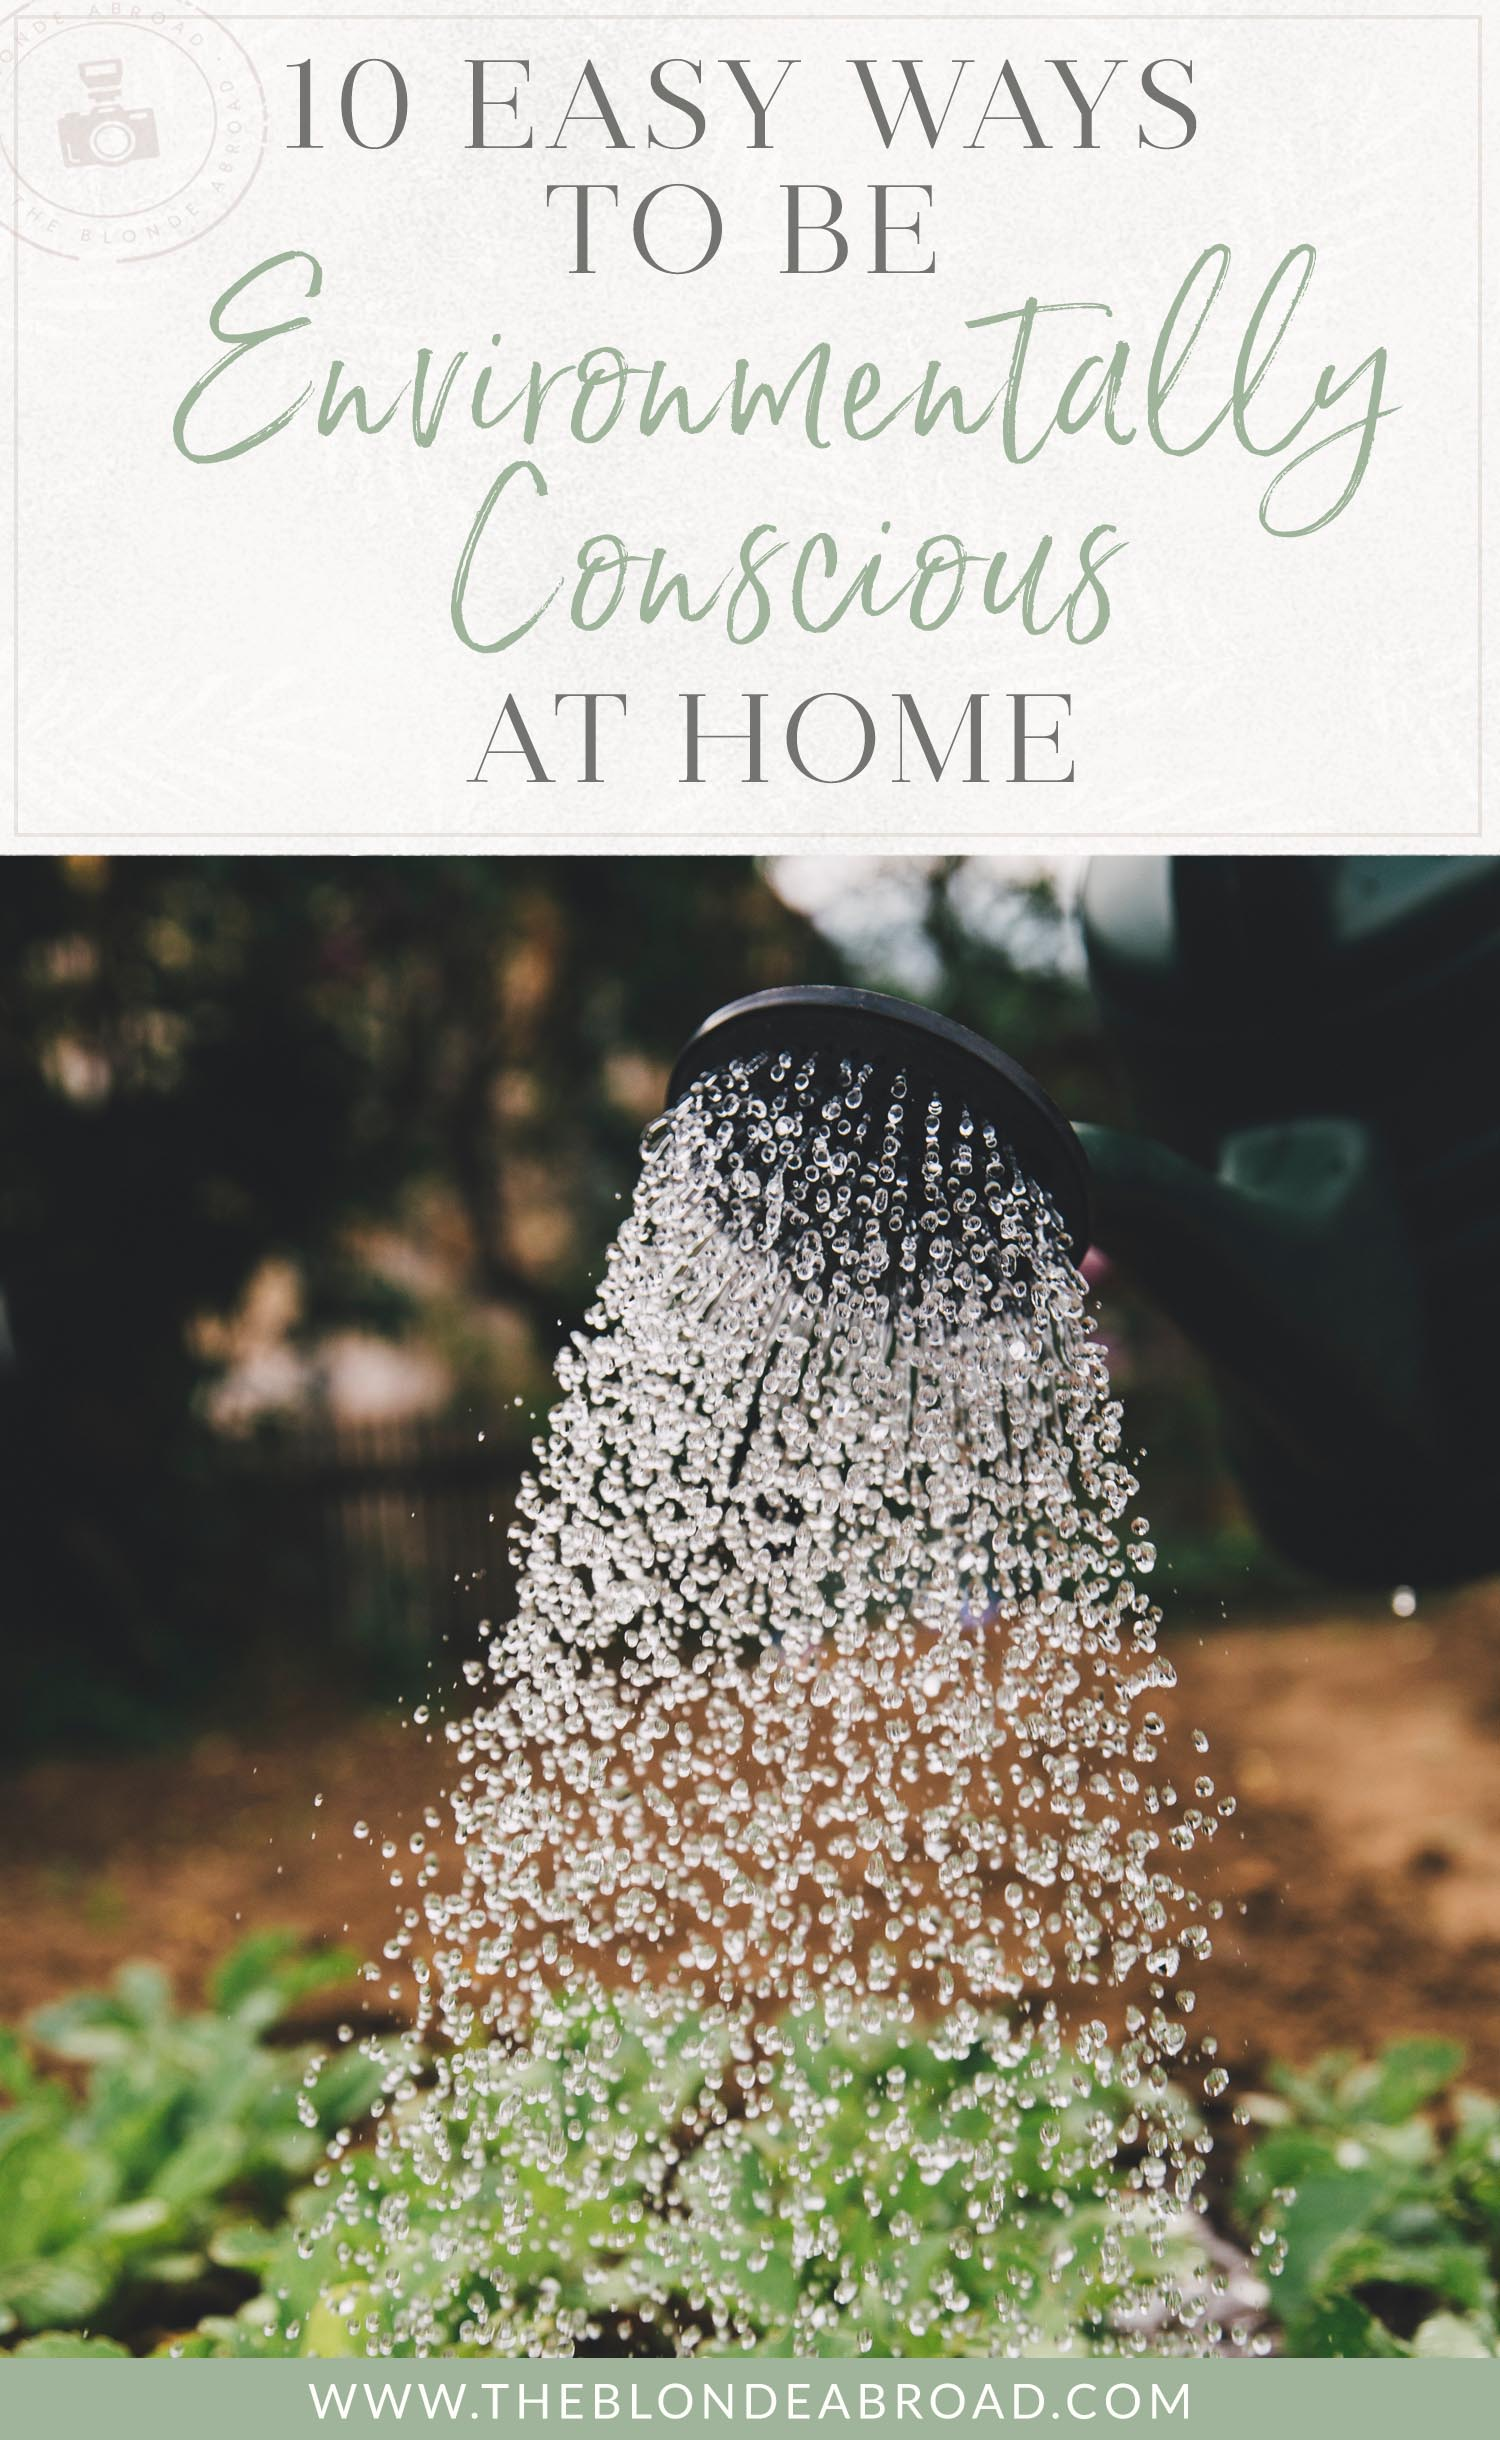 Simple Ways to Make the Environment Better for Your Home